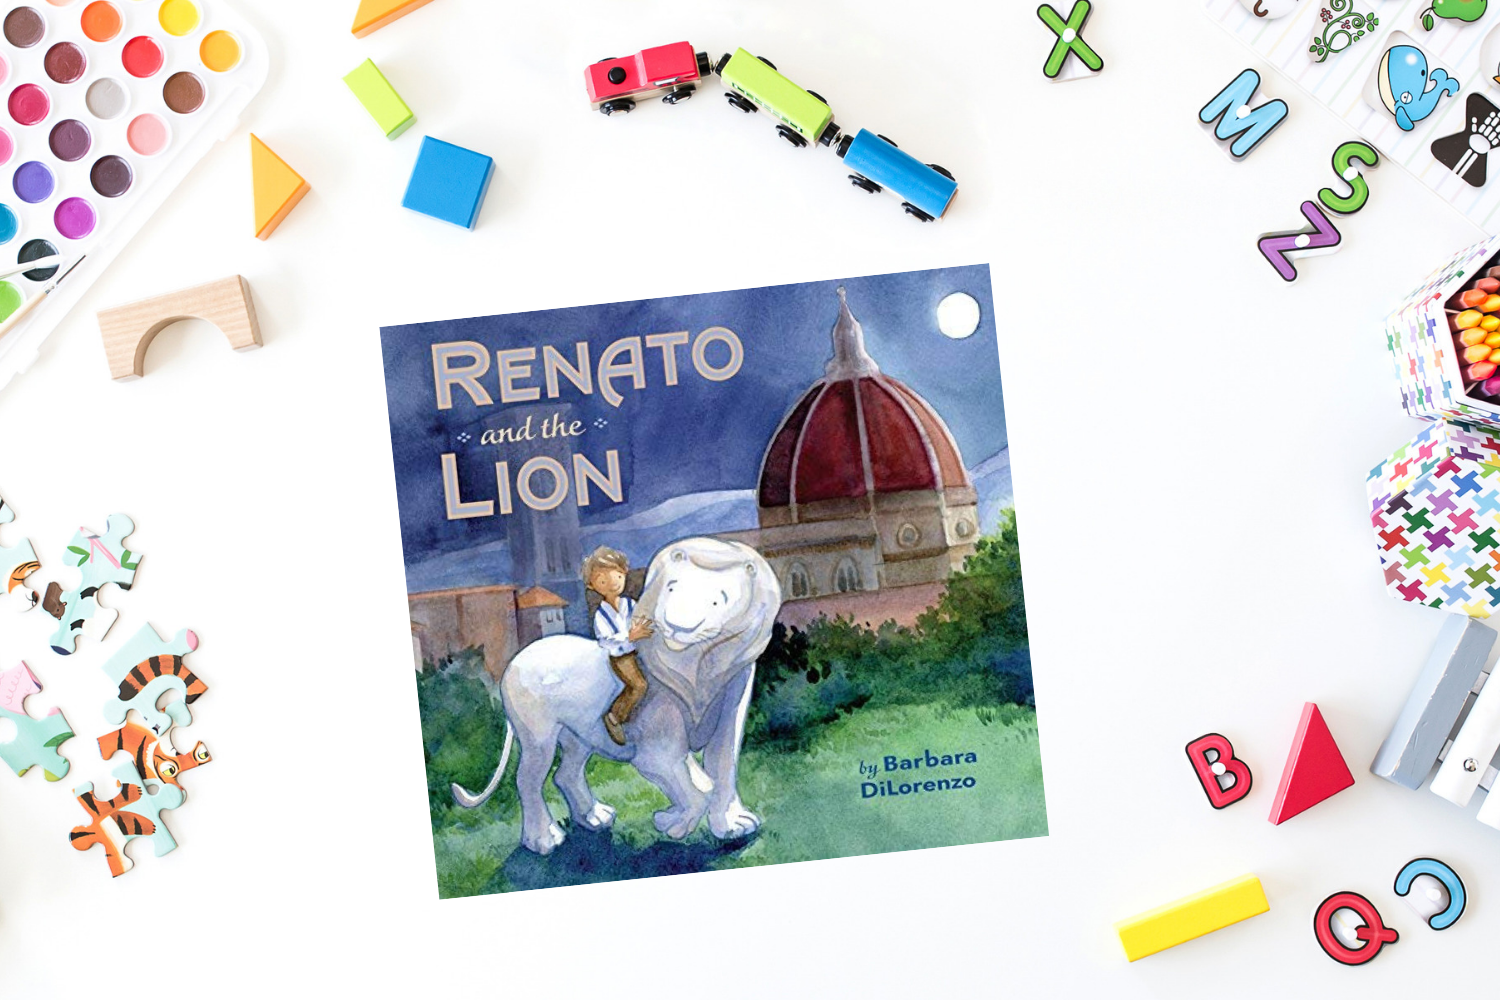 Renato and the Lion - Books from Past Boxes of Tiny Humans Read Kids Book Subscription Box